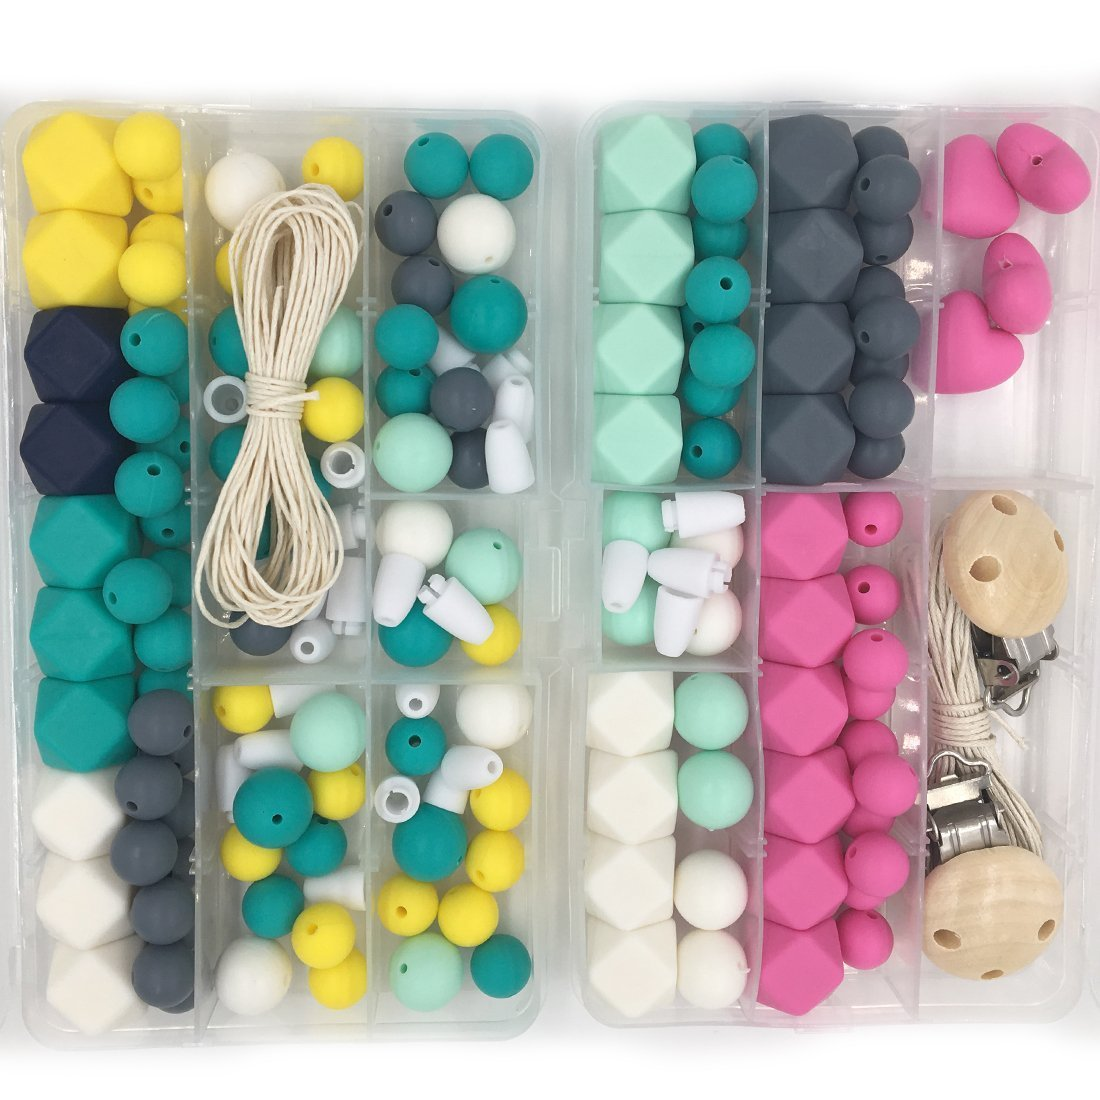 Amyster Silicone Wooden Teething Beads Nursing Necklace DIY Silicone Teething Kit Geometric Hexagon Silicone Wood Beads Teething Necklace Baby Teether Toys (S407)